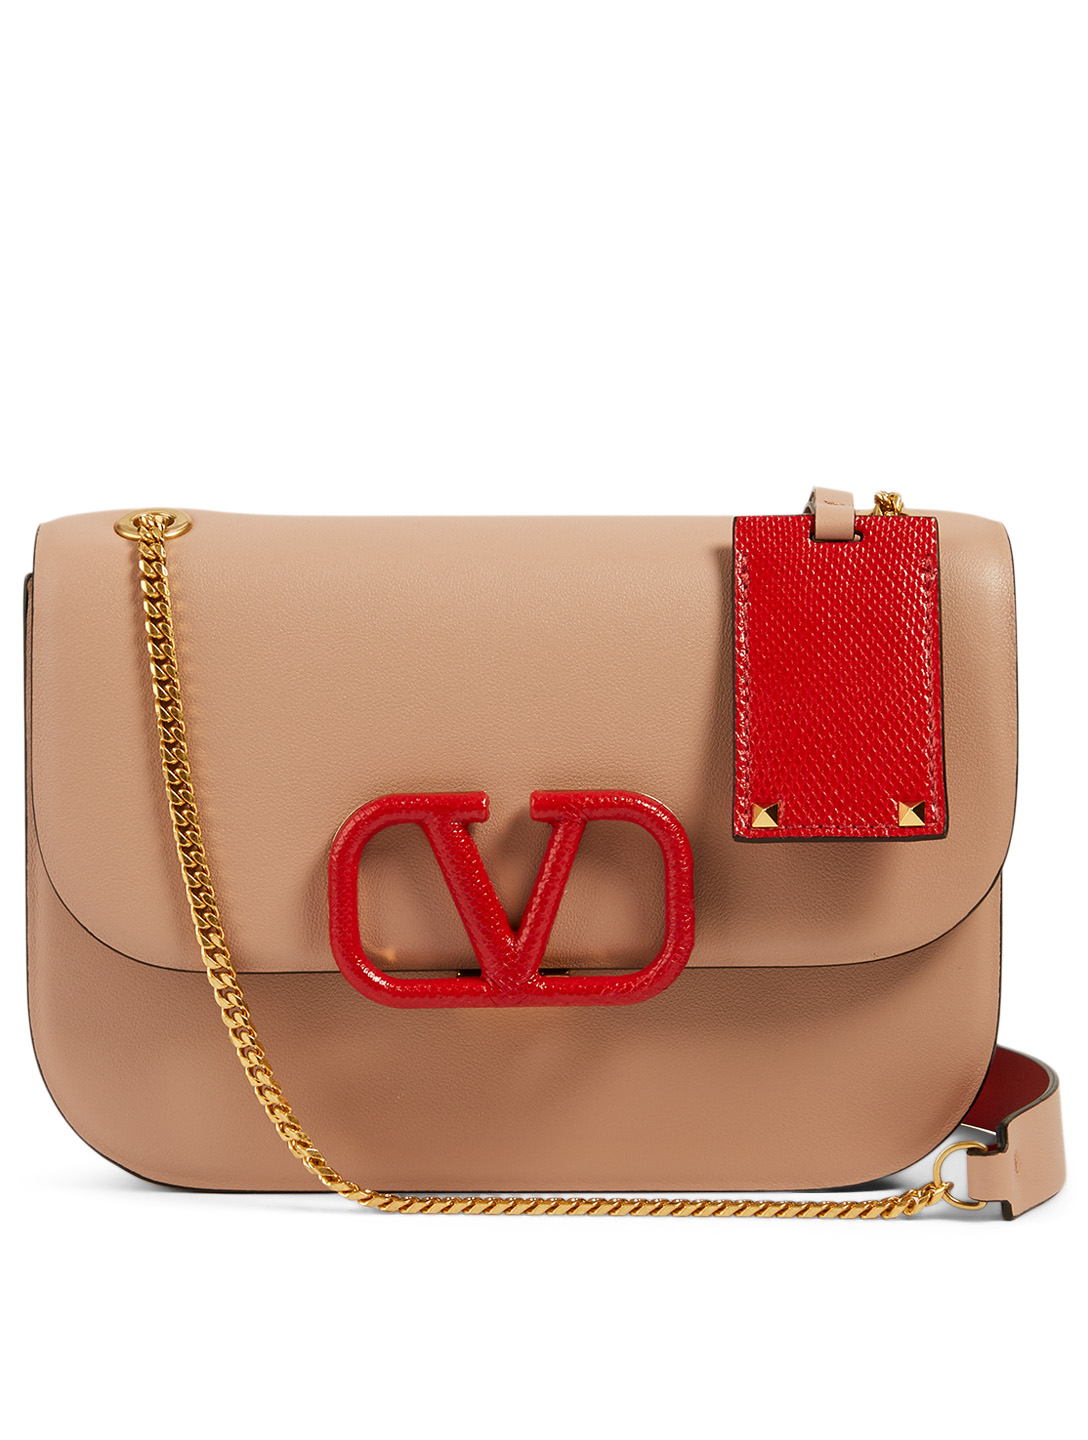 VALENTINO GARAVANI Small VRing Leather Chain Bag Women's Pink